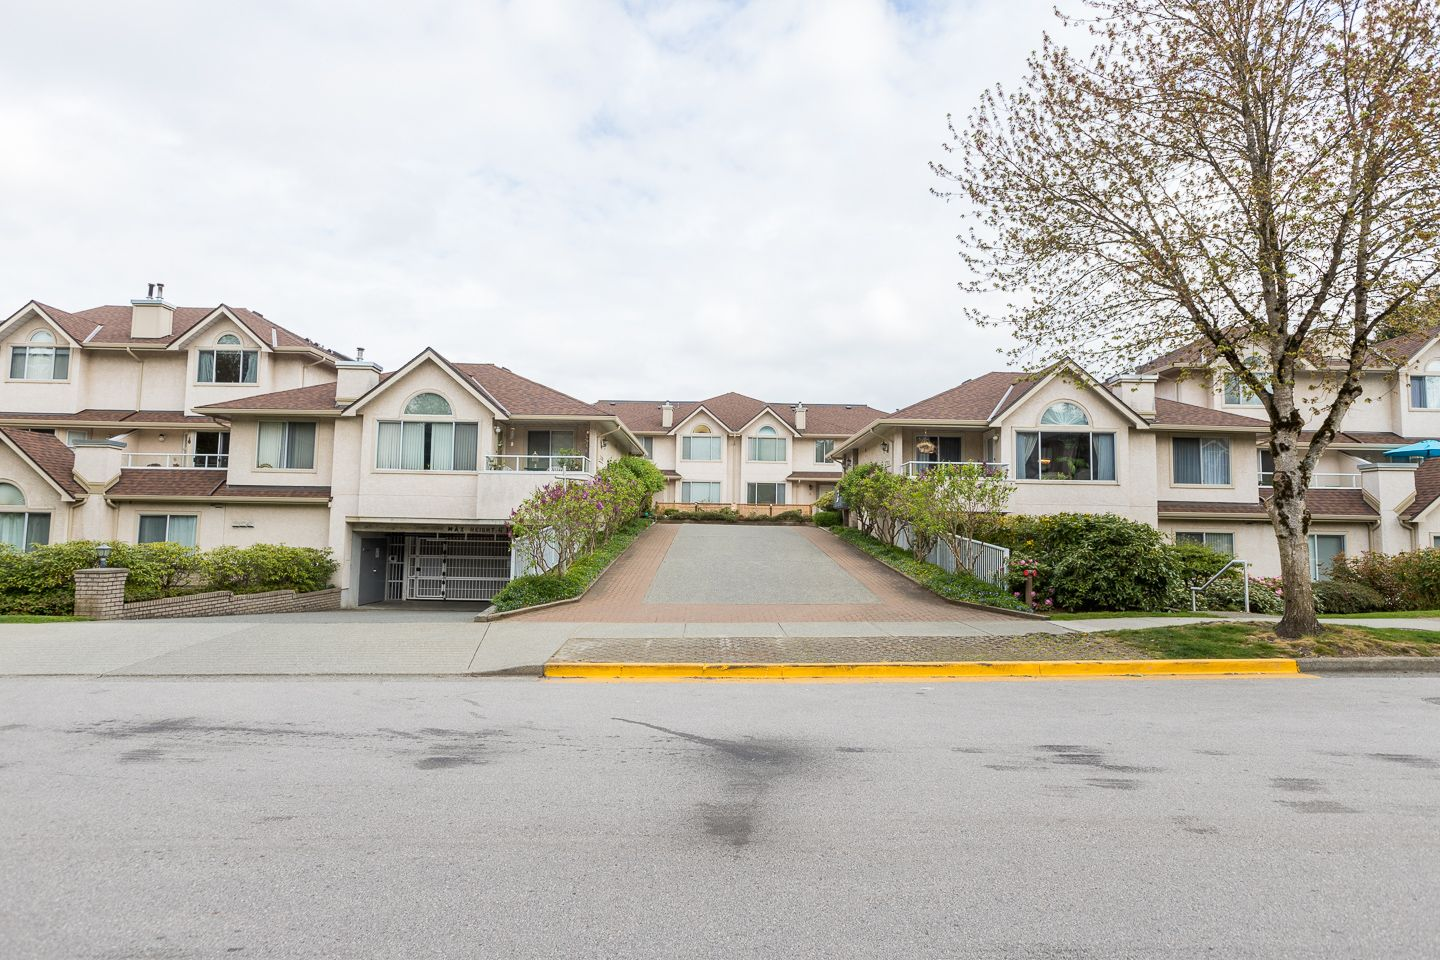 Photo 23: Photos: #8-3701 THURSTON ST in BURNABY: Central Park BS Condo for sale (Burnaby South)  : MLS®# R2572861